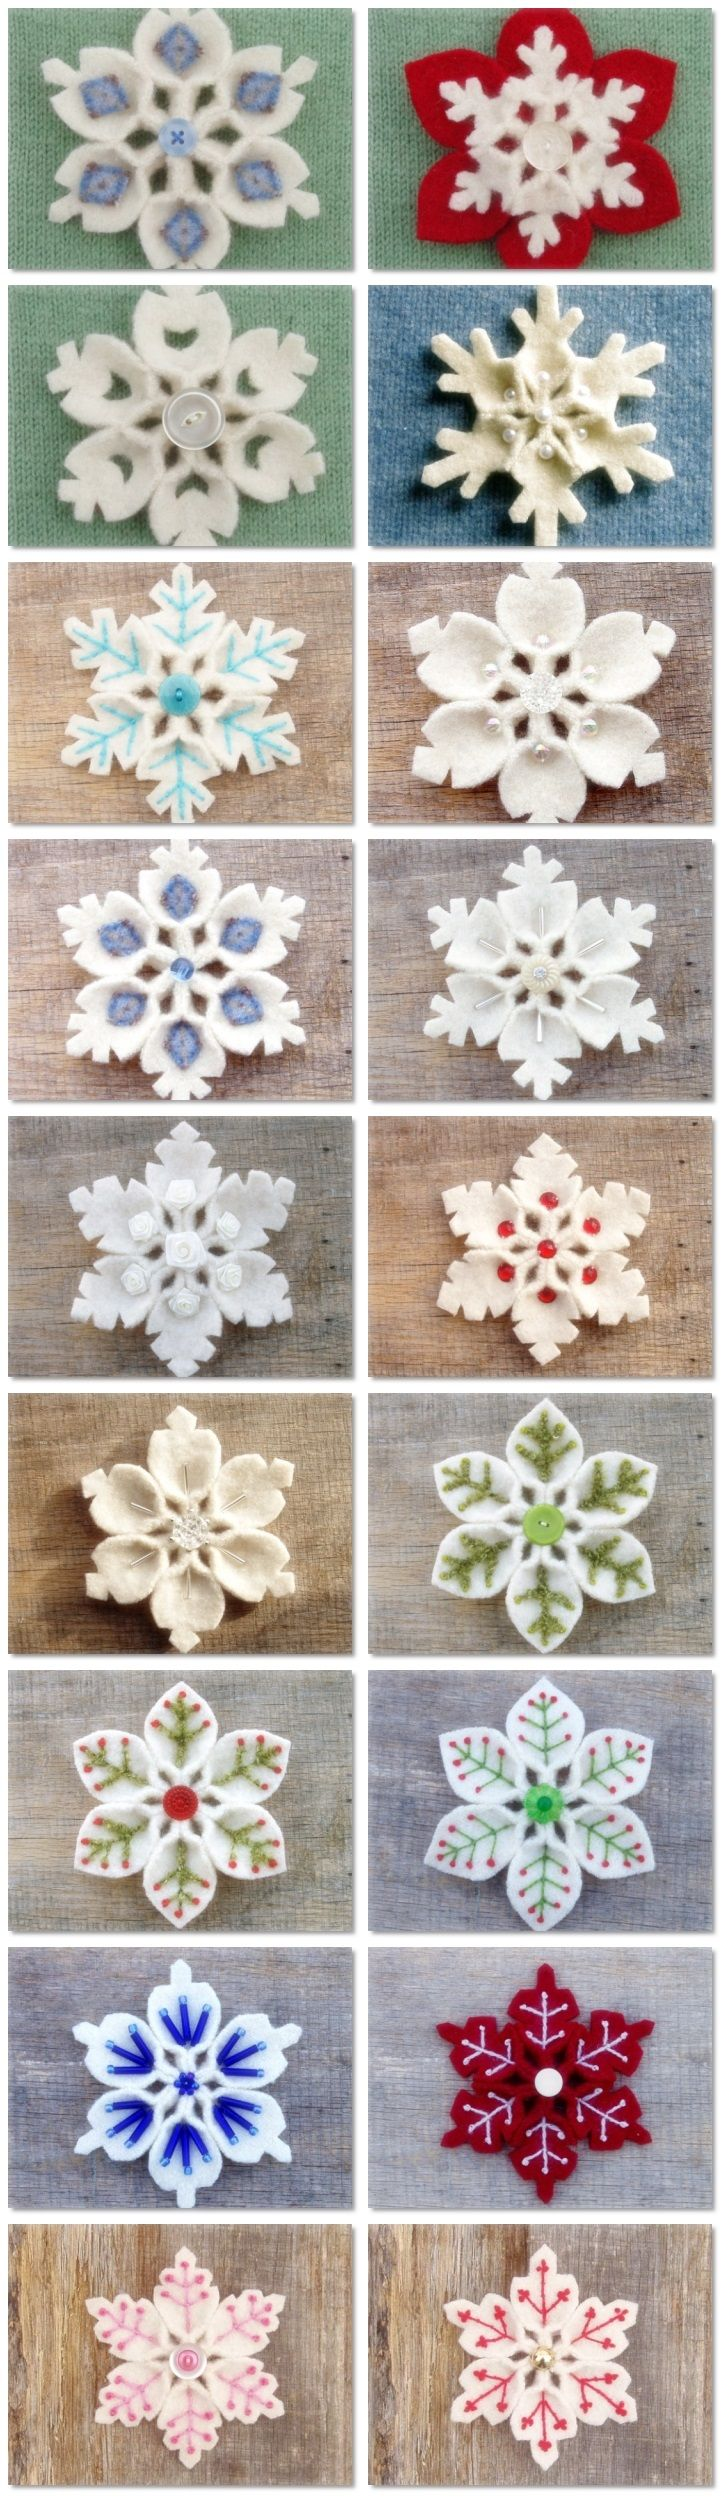 How to make Felt Snowflake DIY step by step tutorial instruction ...